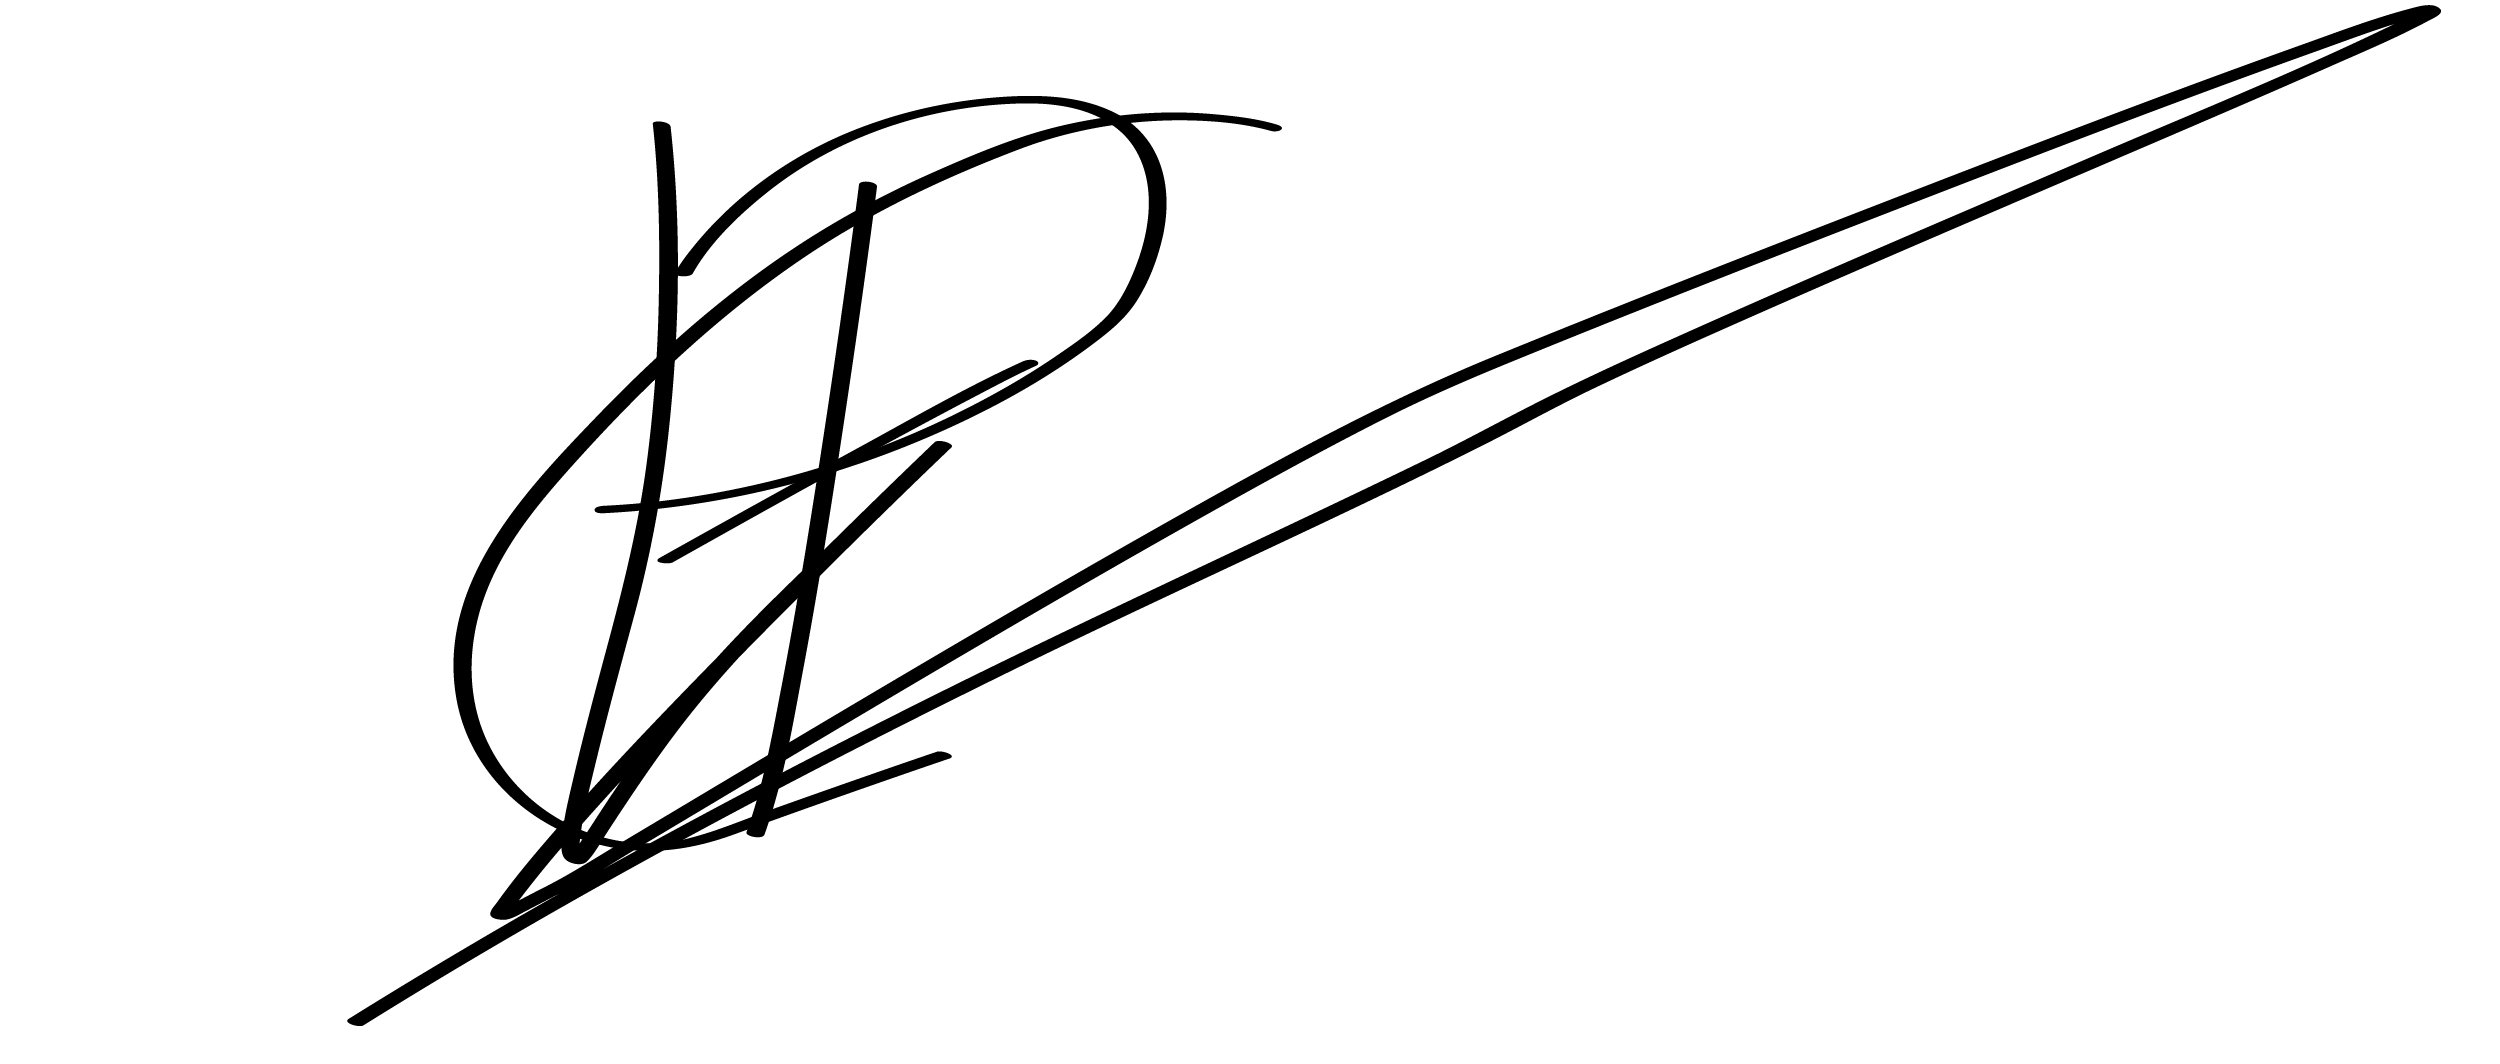 Caitlin white Signature